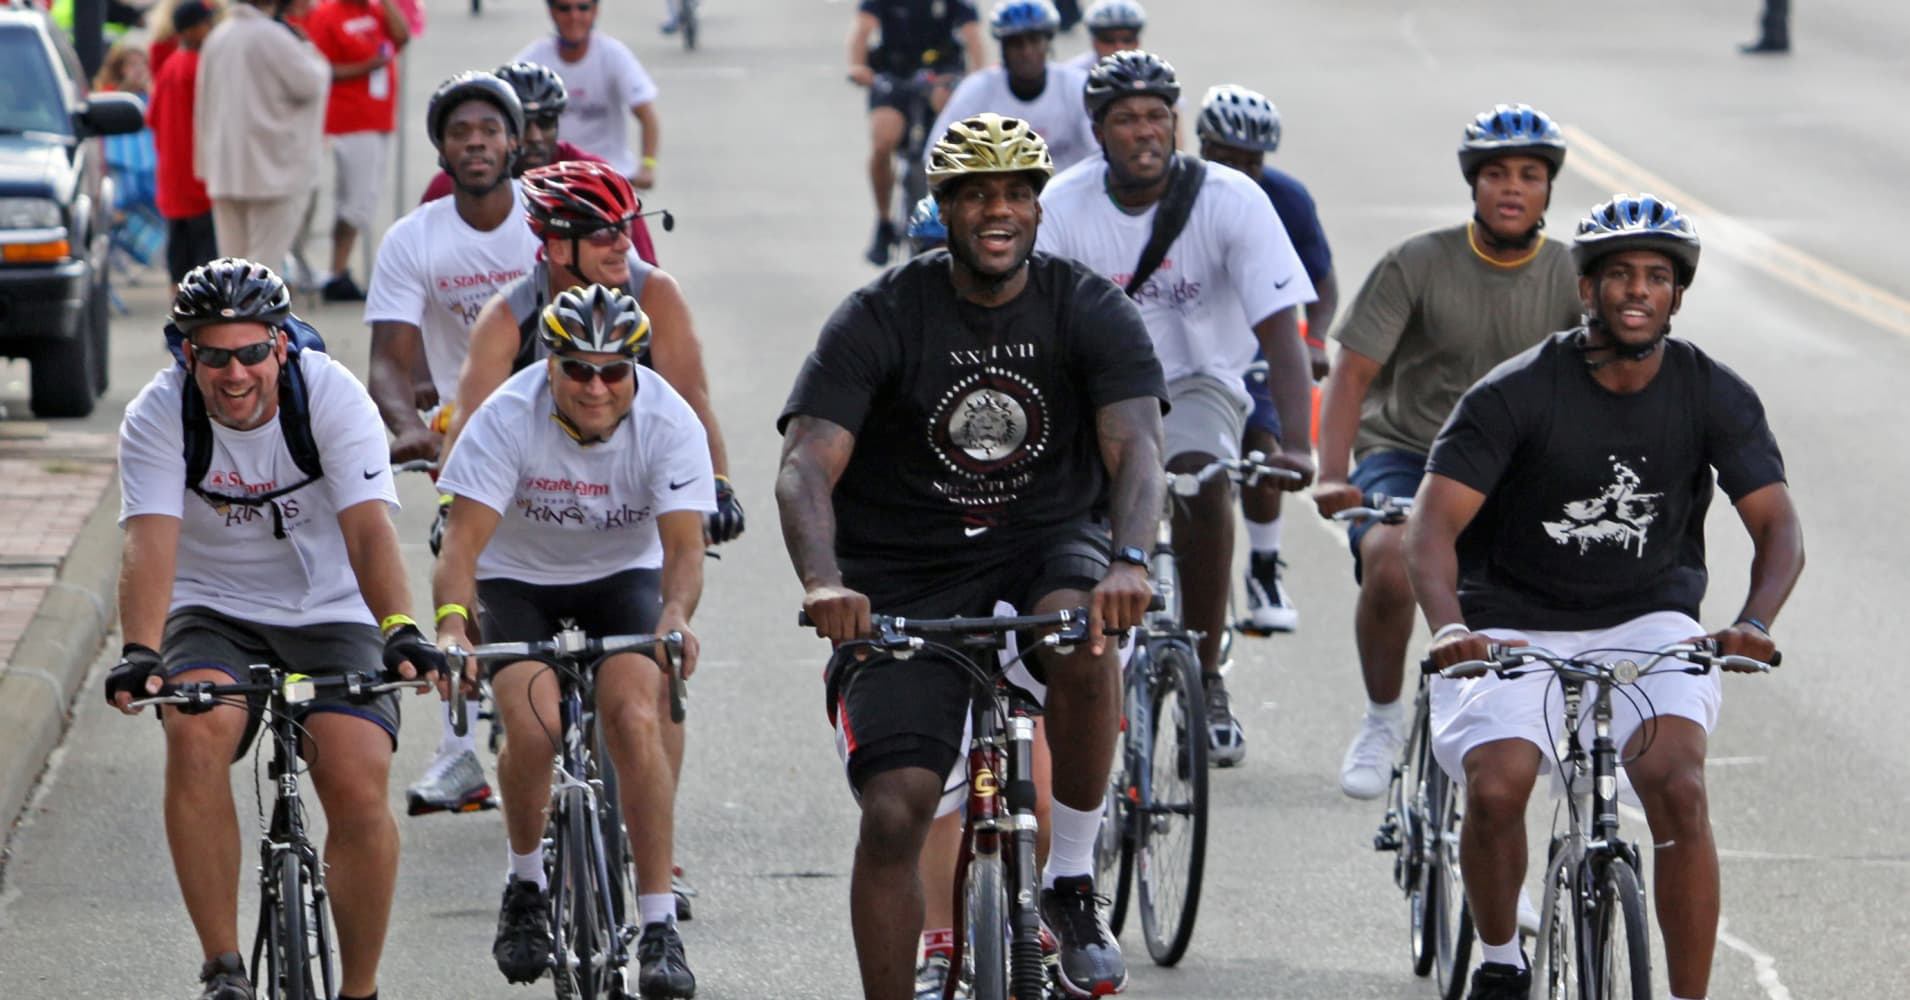 LeBron James and Chris Paul ride their bikes at the LeBron James State Farm King For Kids Bike-a-thon in Akron, Ohio